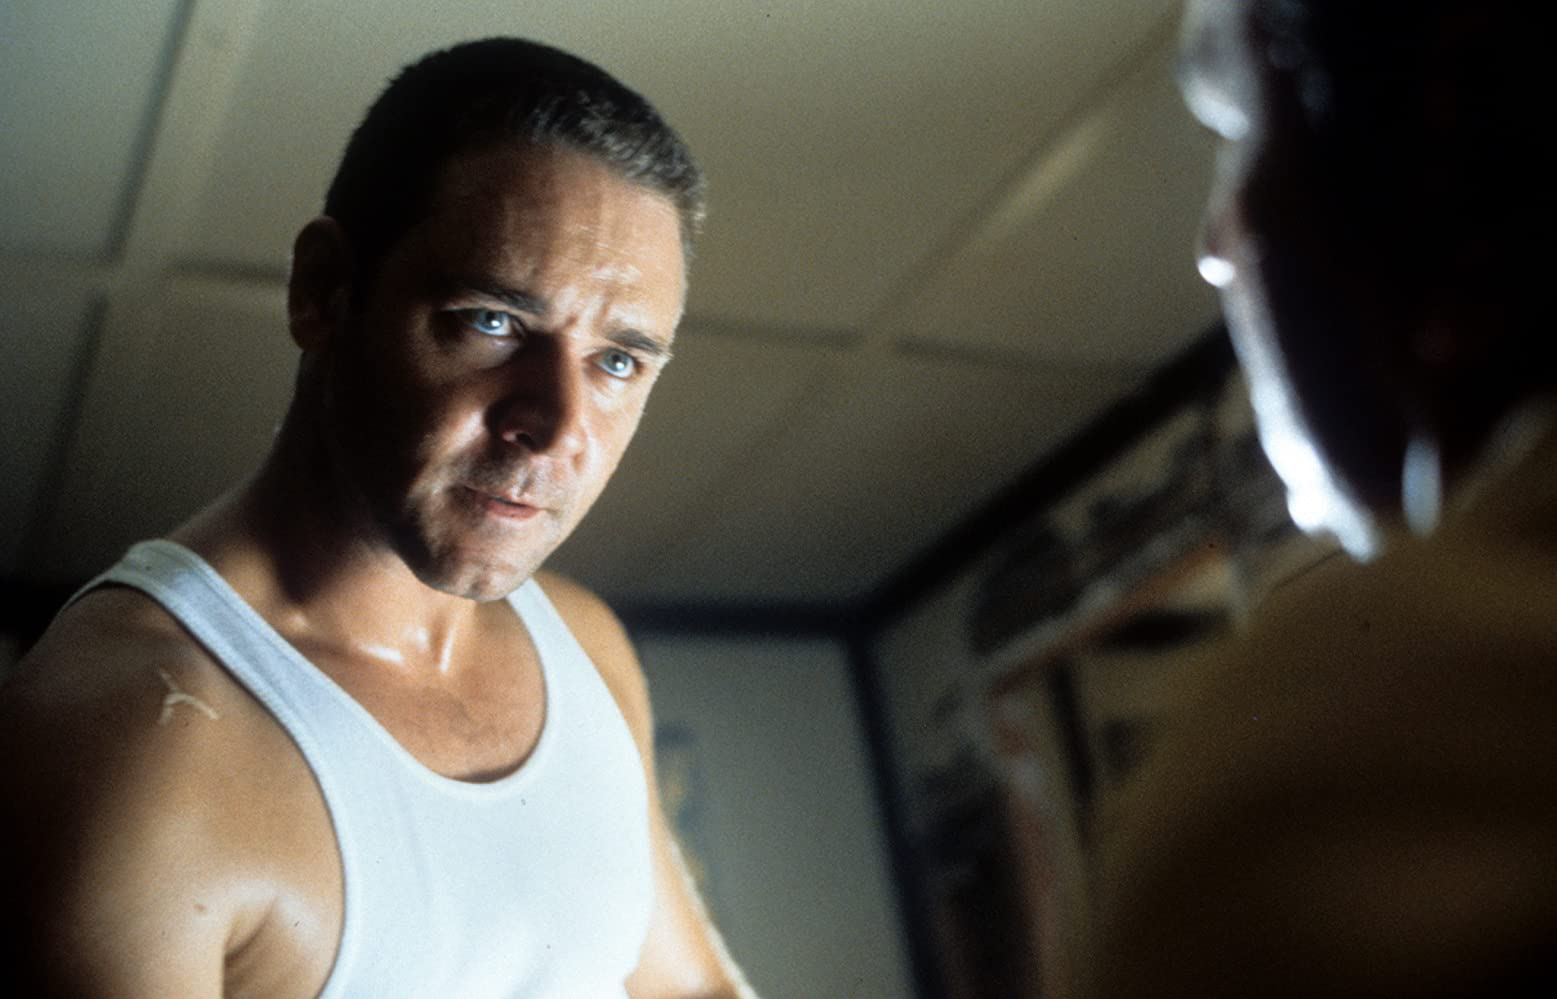 Russell Crowe in L.A. Confidential (1997)